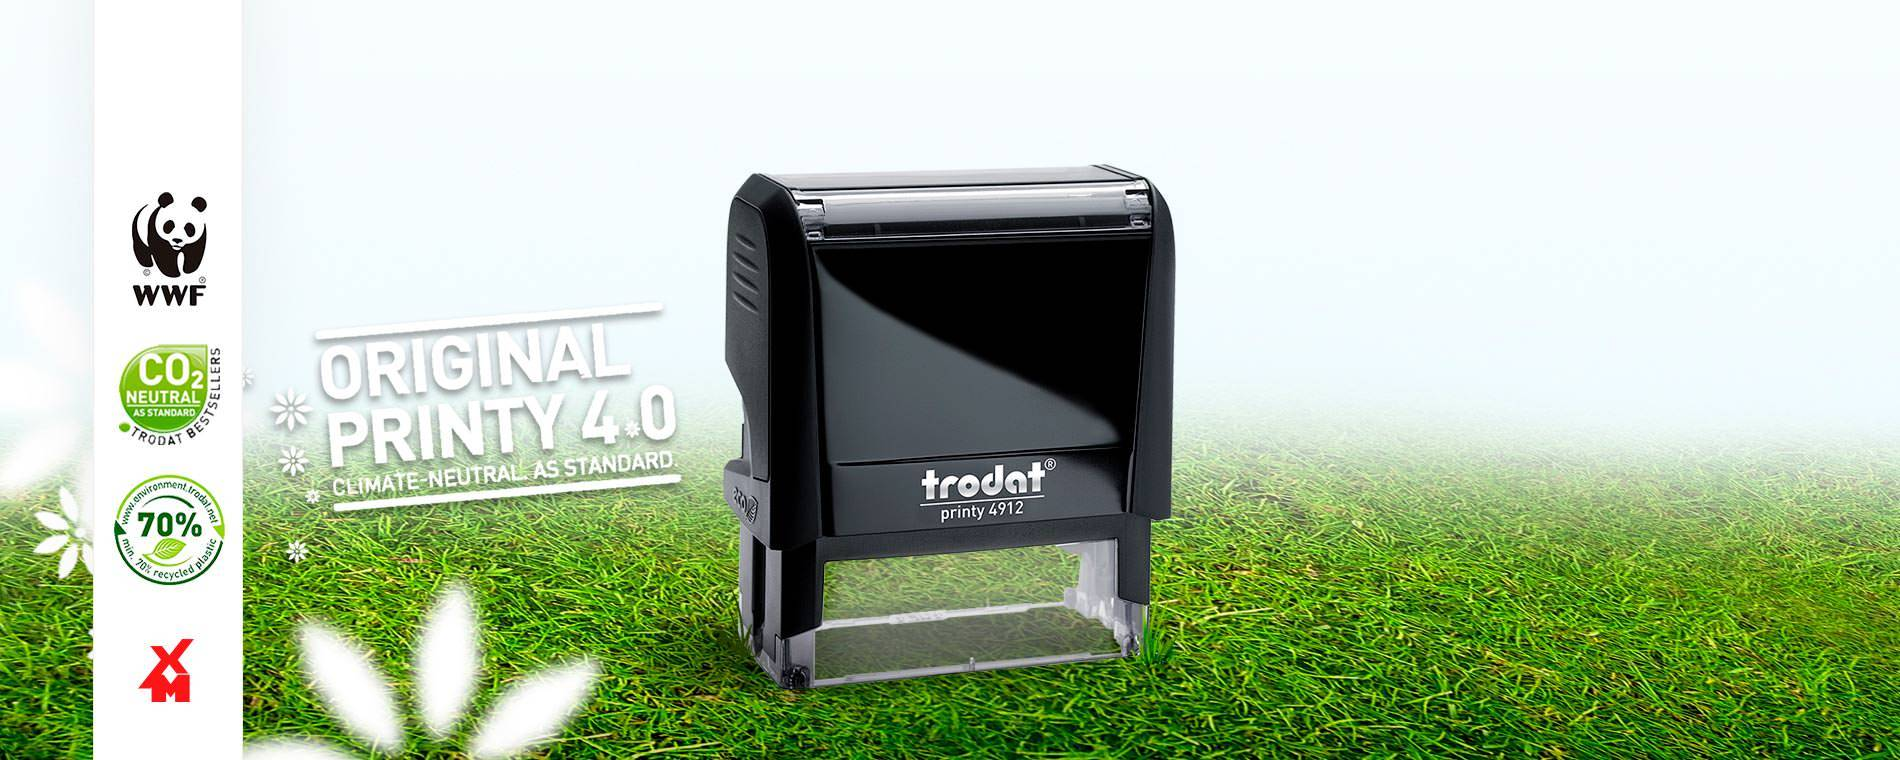 Trodat Printy 4.0 - Climate Neutral - Xpress Marking